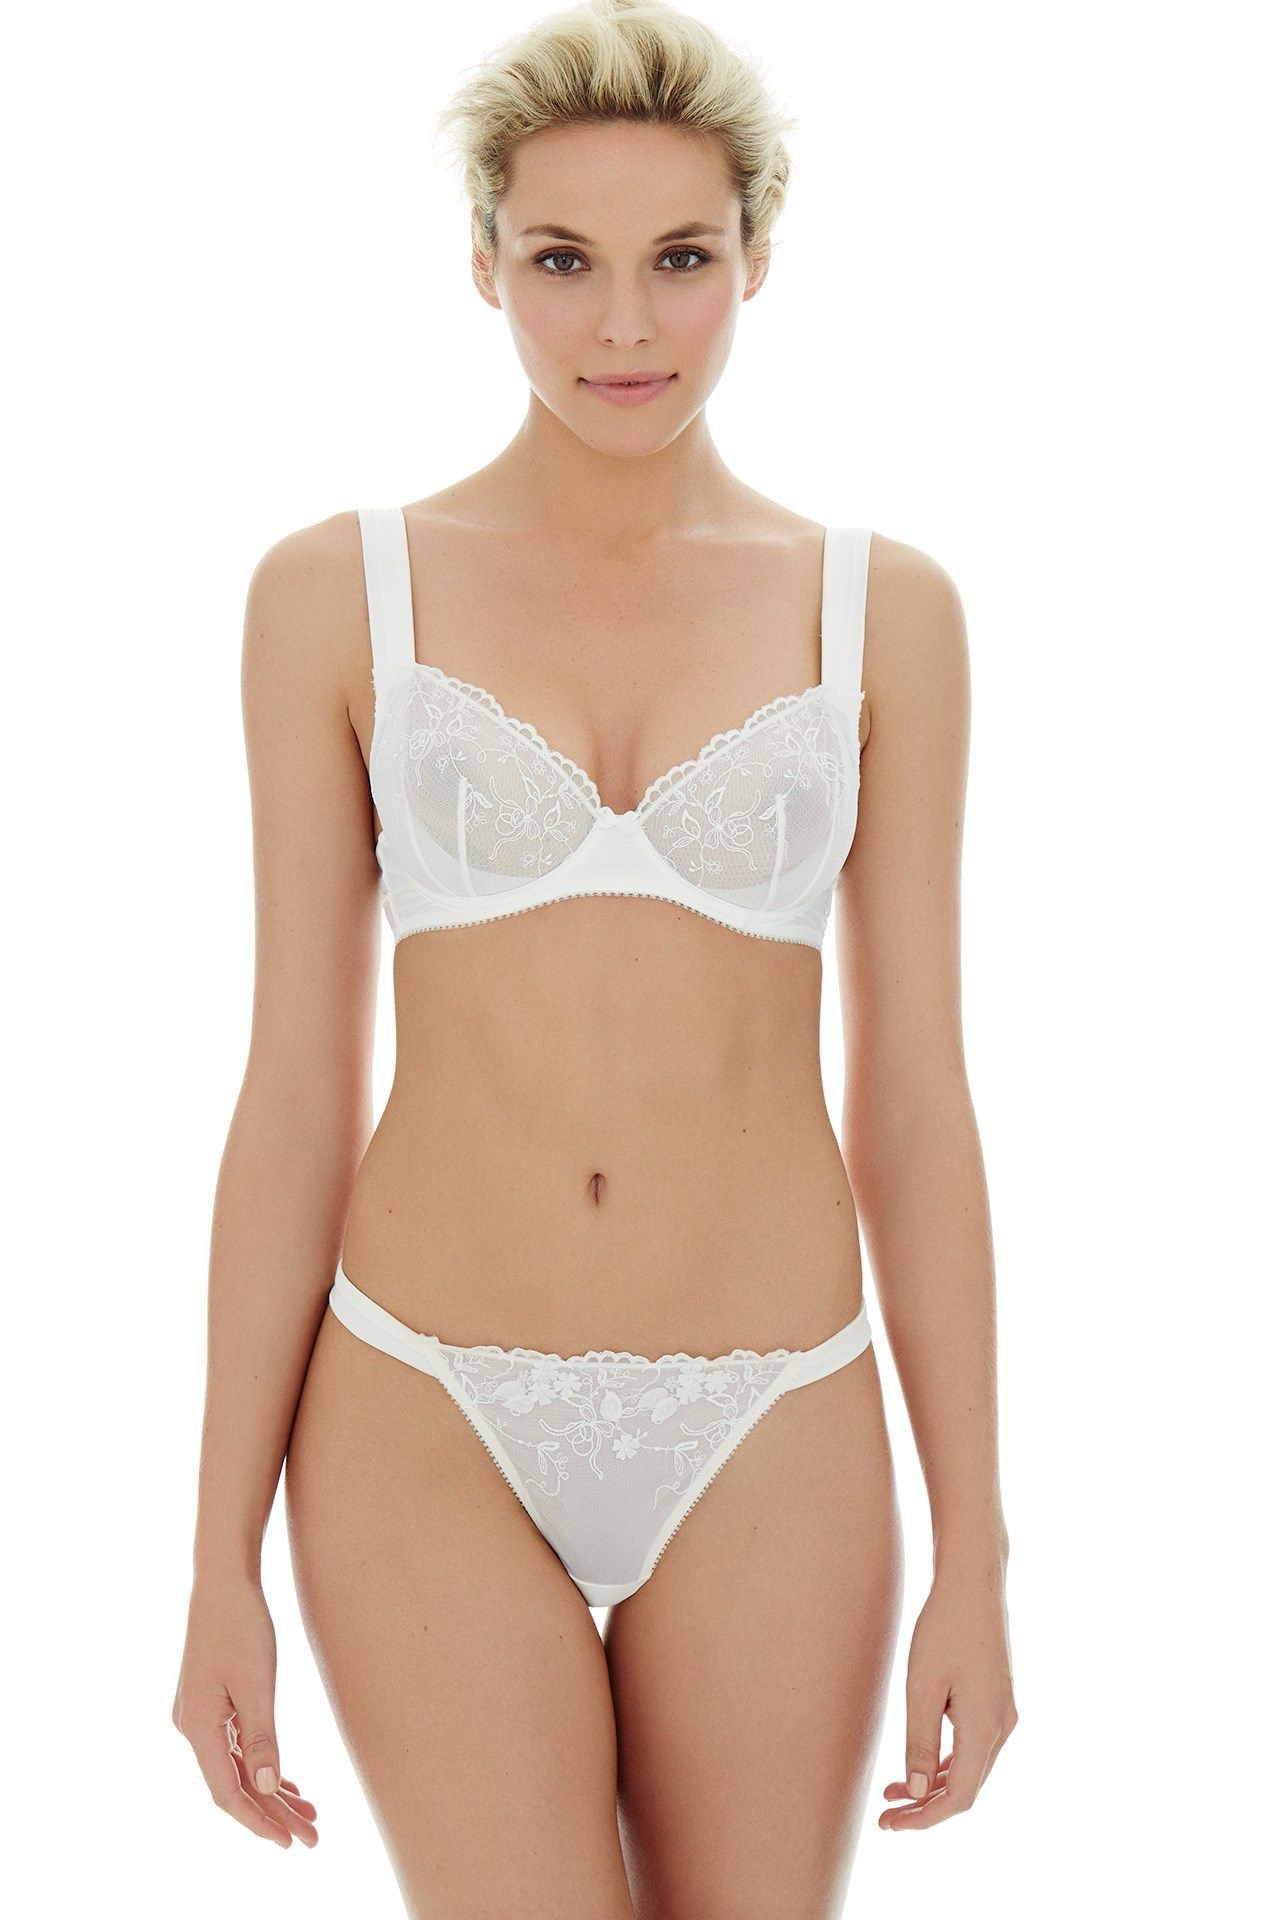 fbdad31ecae Wide straps are brilliantly supportive for your wedding day (if you re  wearing a dress with sleeves)